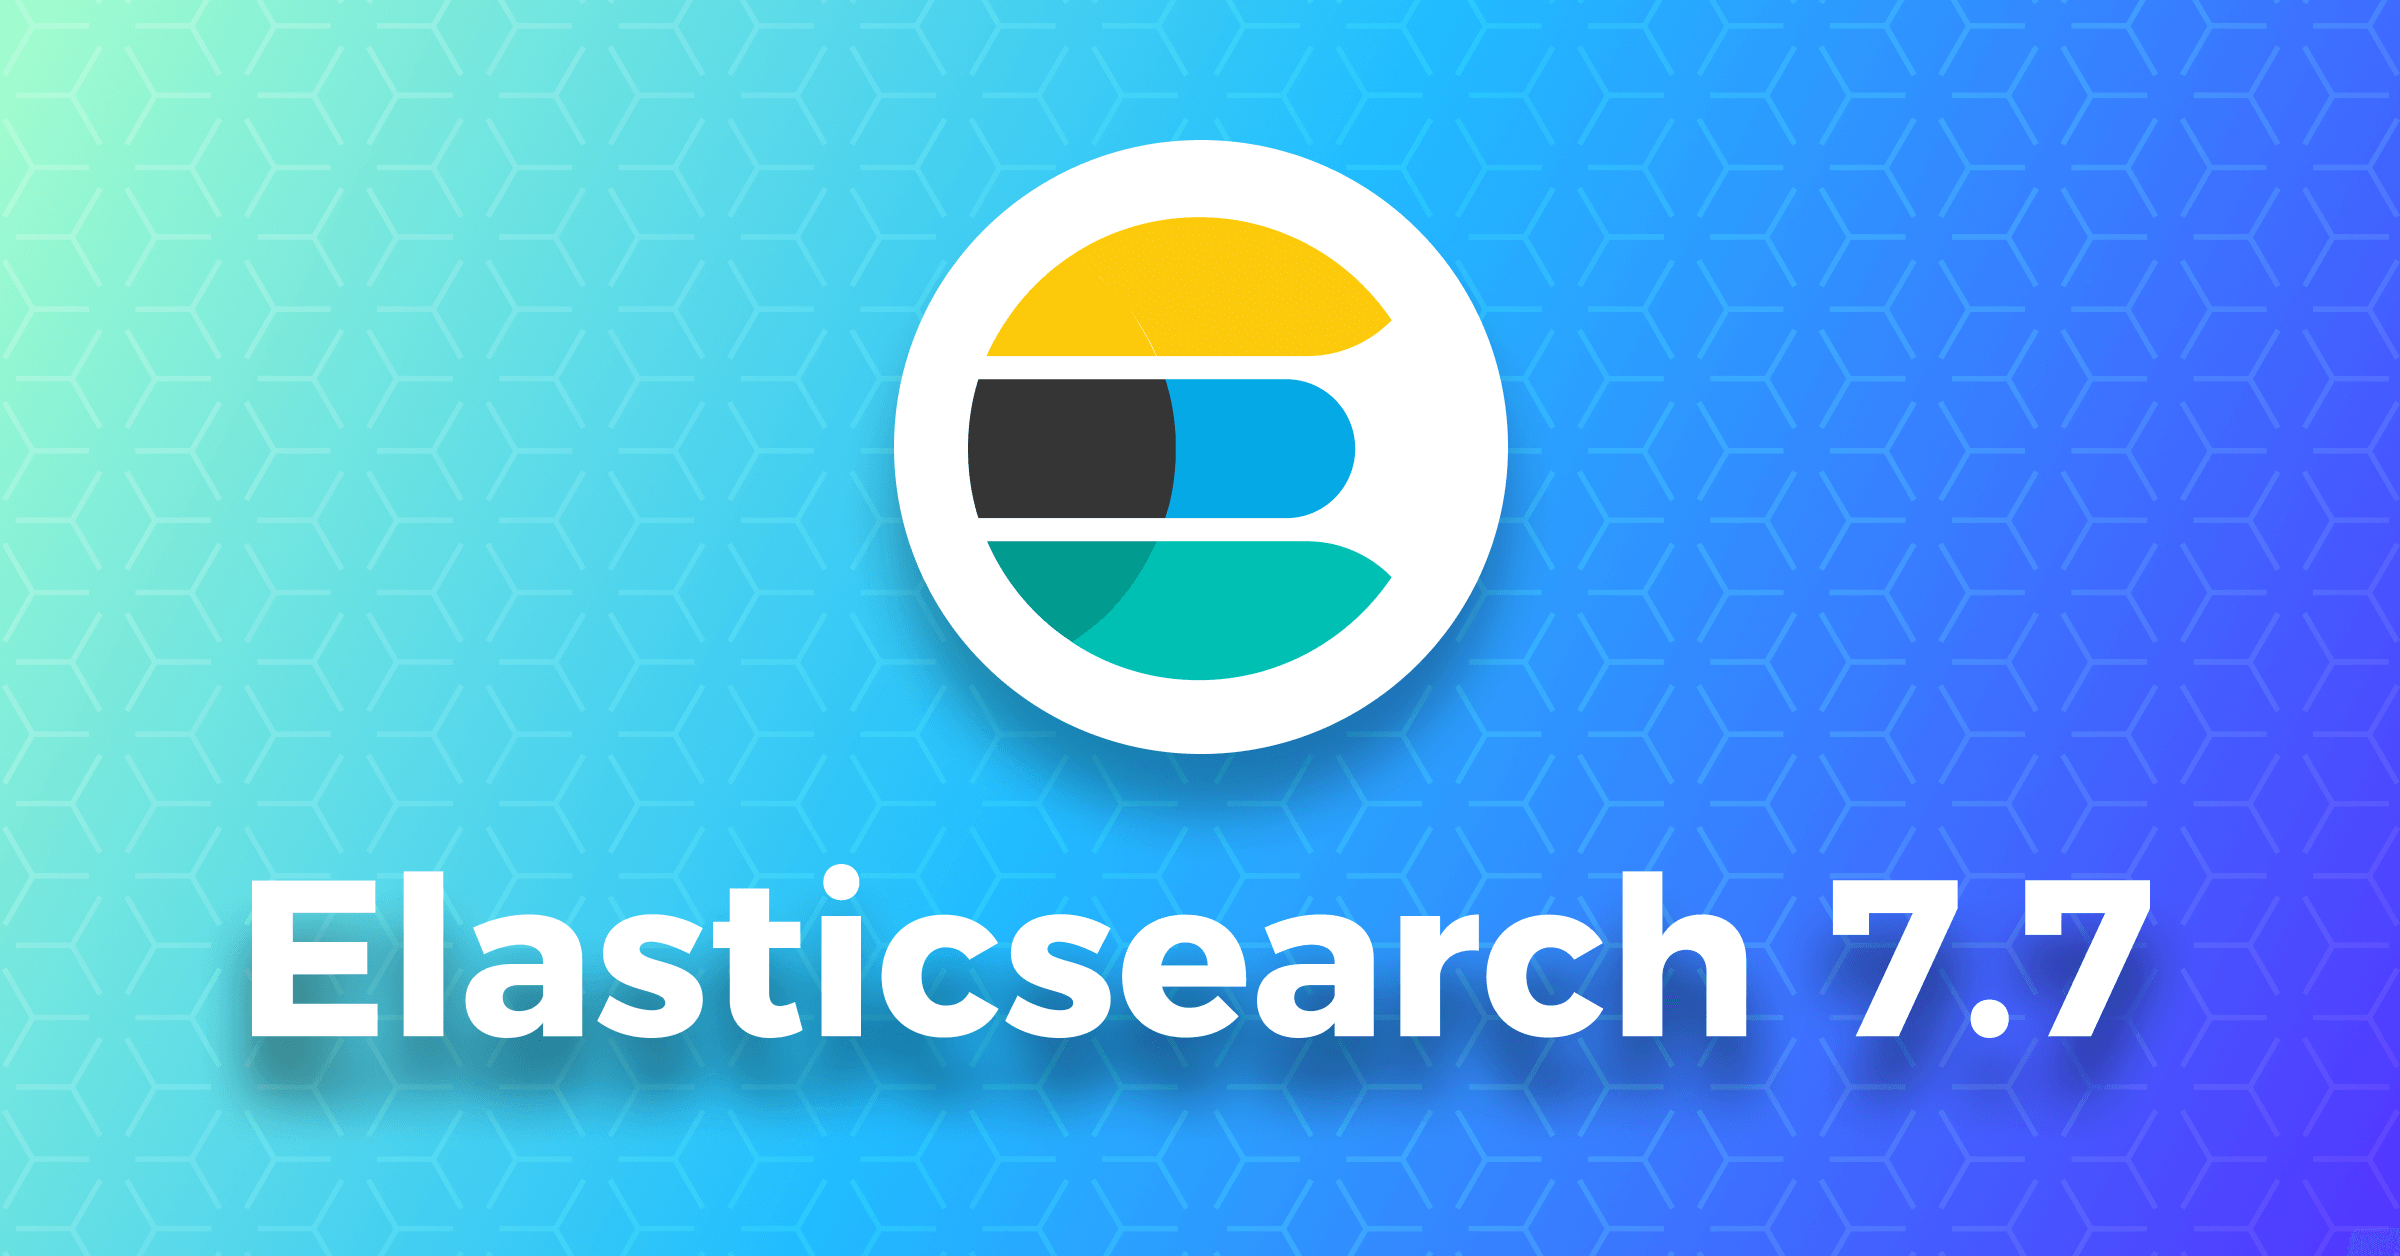 What's New in Elasticsearch 7.7?